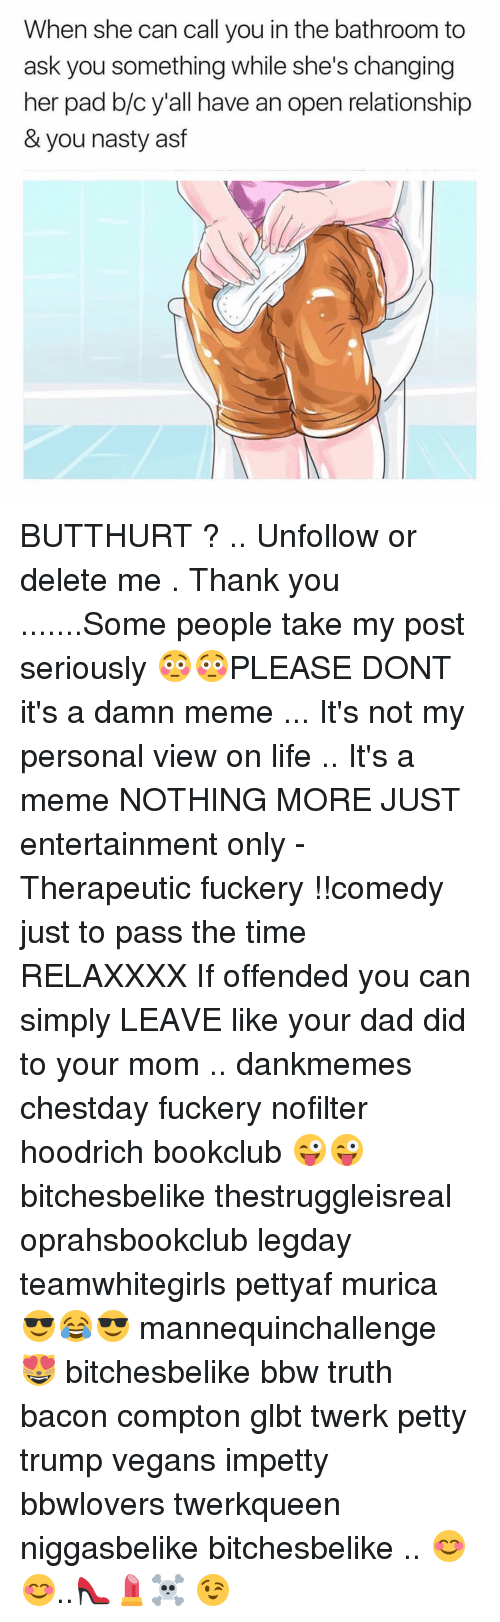 Bbw, Butthurt, and Memes: When she can call you in the bathroom to  ask you something while she's changing  her pad b/c y'all have an open relationship  & you nasty asf BUTTHURT ? .. Unfollow or delete me . Thank you .......Some people take my post seriously 😳😳PLEASE DONT it's a damn meme ... It's not my personal view on life .. It's a meme NOTHING MORE JUST entertainment only - Therapeutic fuckery !!comedy just to pass the time RELAXXXX If offended you can simply LEAVE like your dad did to your mom .. dankmemes chestday fuckery nofilter hoodrich bookclub 😜😜 bitchesbelike thestruggleisreal oprahsbookclub legday teamwhitegirls pettyaf murica 😎😂😎 mannequinchallenge 😻 bitchesbelike bbw truth bacon compton glbt twerk petty trump vegans impetty bbwlovers twerkqueen niggasbelike bitchesbelike .. 😊😊..👠💄☠️ 😉